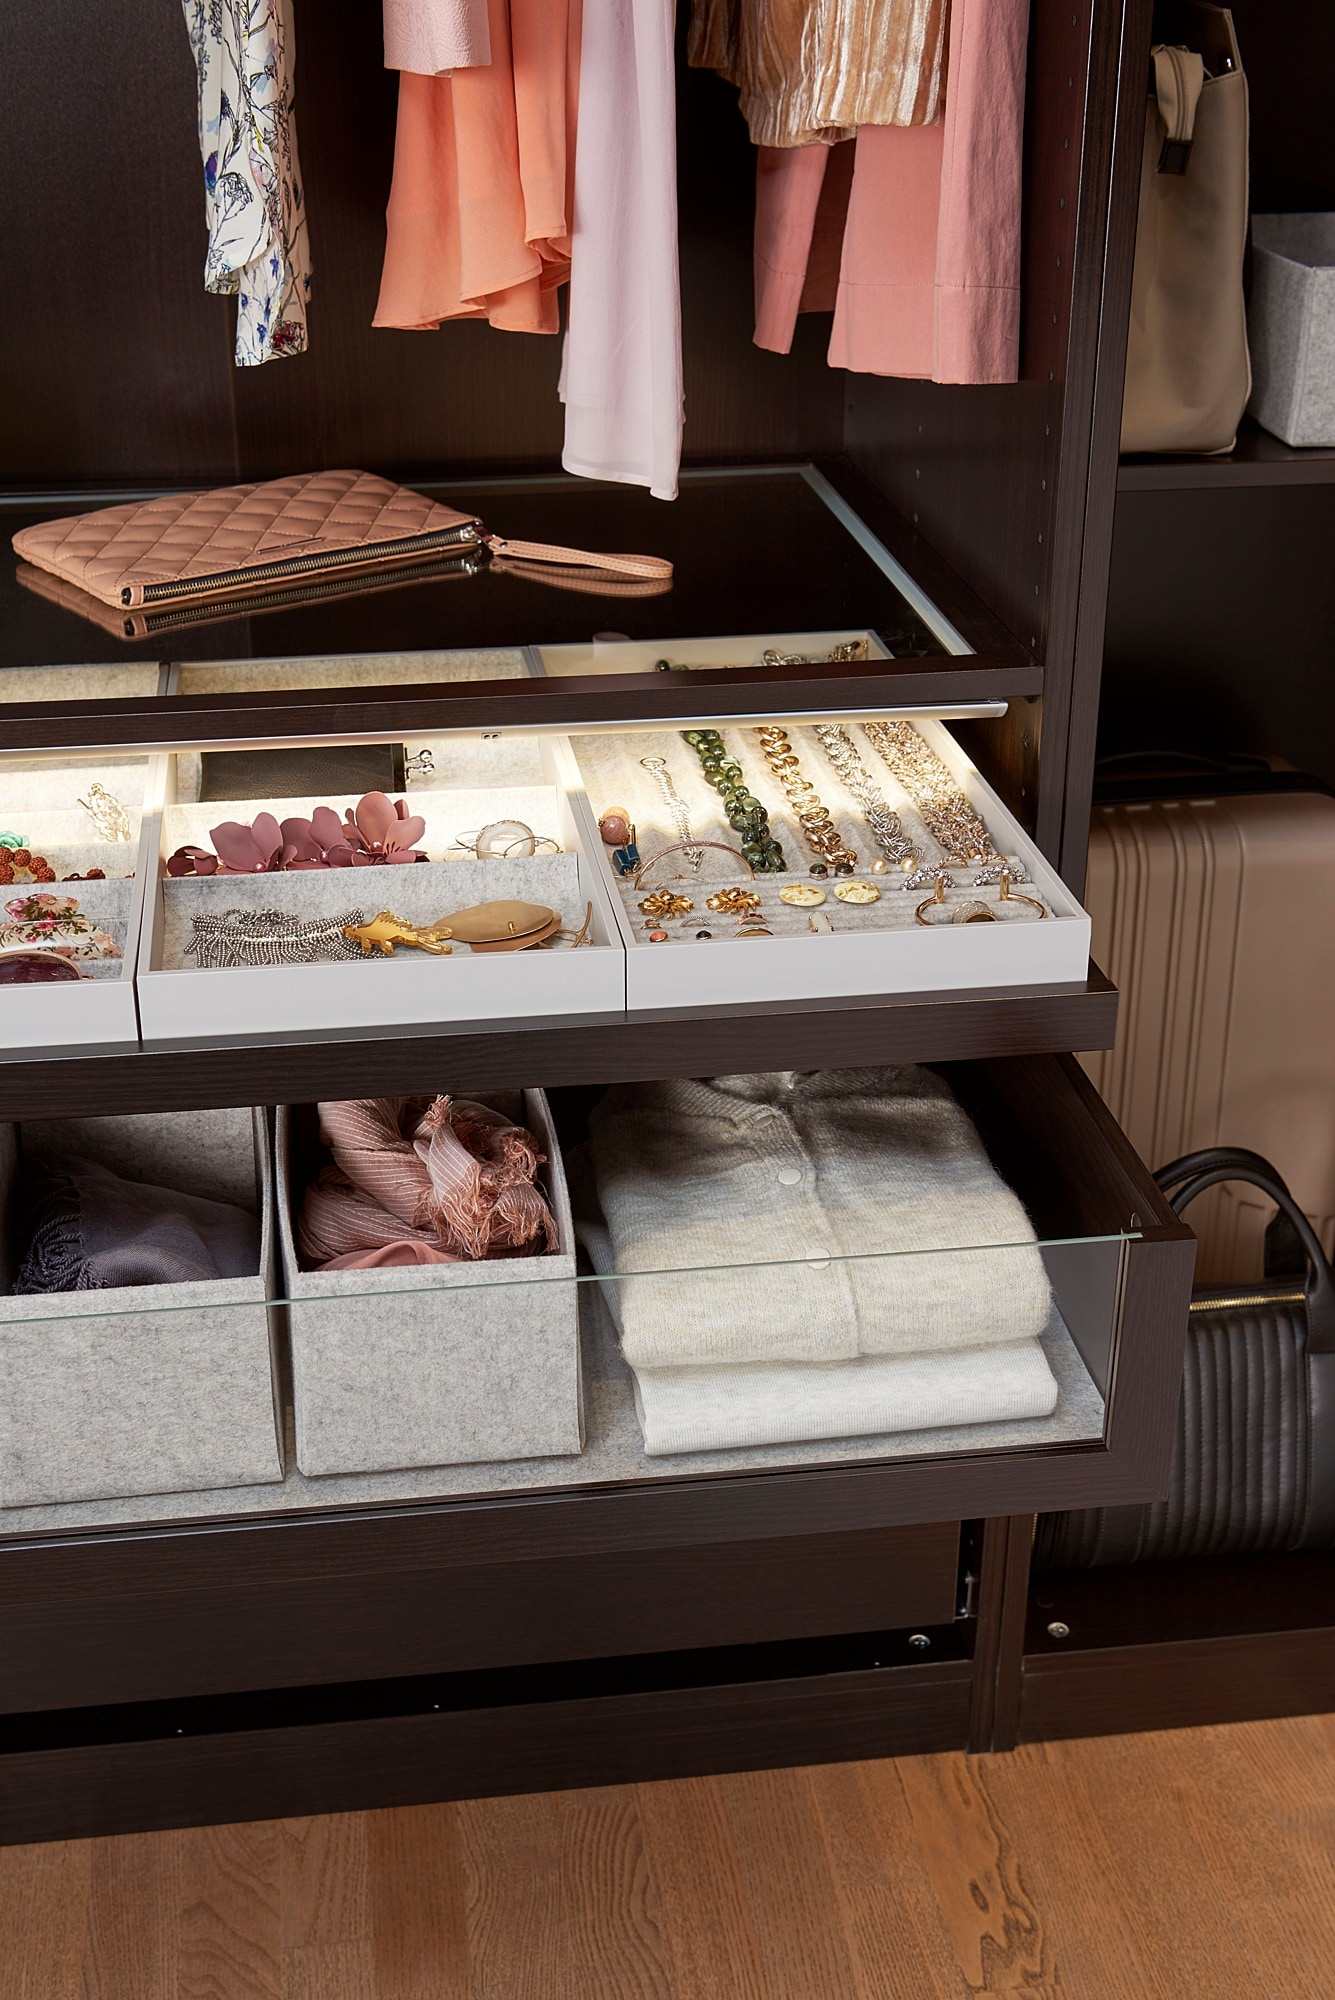 KOMPLEMENT pull-out tray with insert black-brown 46.1 cm 50 cm 56.3 cm 6.7 cm 58 cm 10 kg